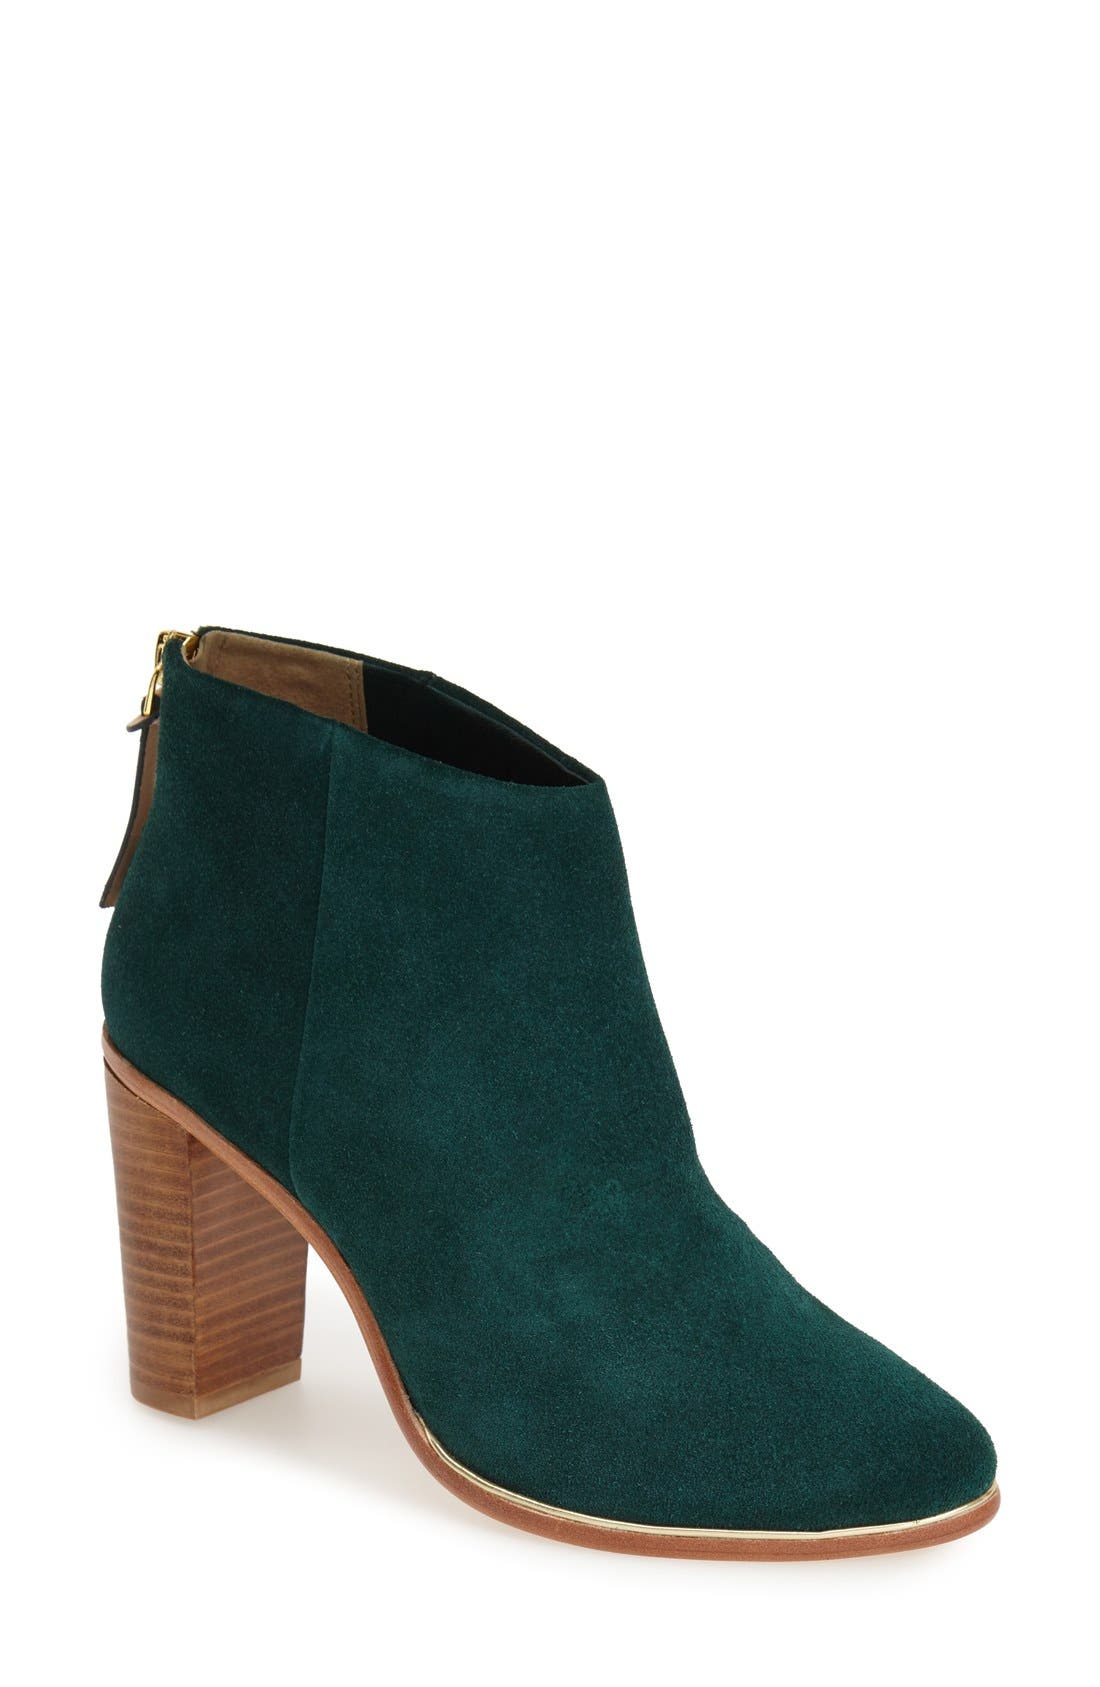 Main Image - Ted Baker London 'Lorca 2' Bootie (Women)